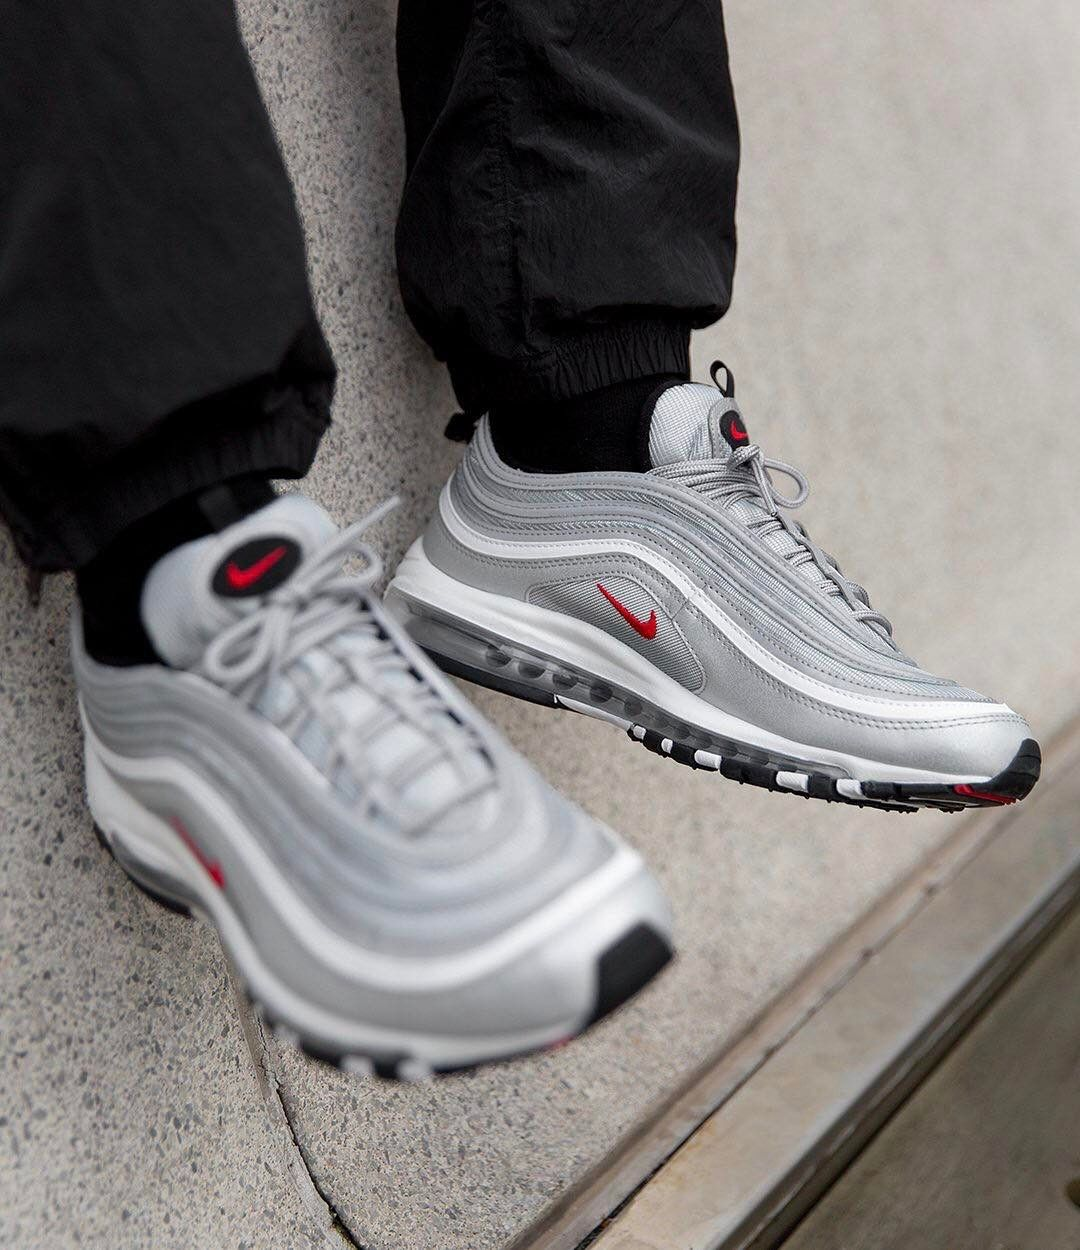 The Nike Air Max 97 Og Qs Silver Bullet Is In Stock Now With Worldwide Shipping Options Complete Your Look With S Nike Air Max Air Max Sneakers Nike Air